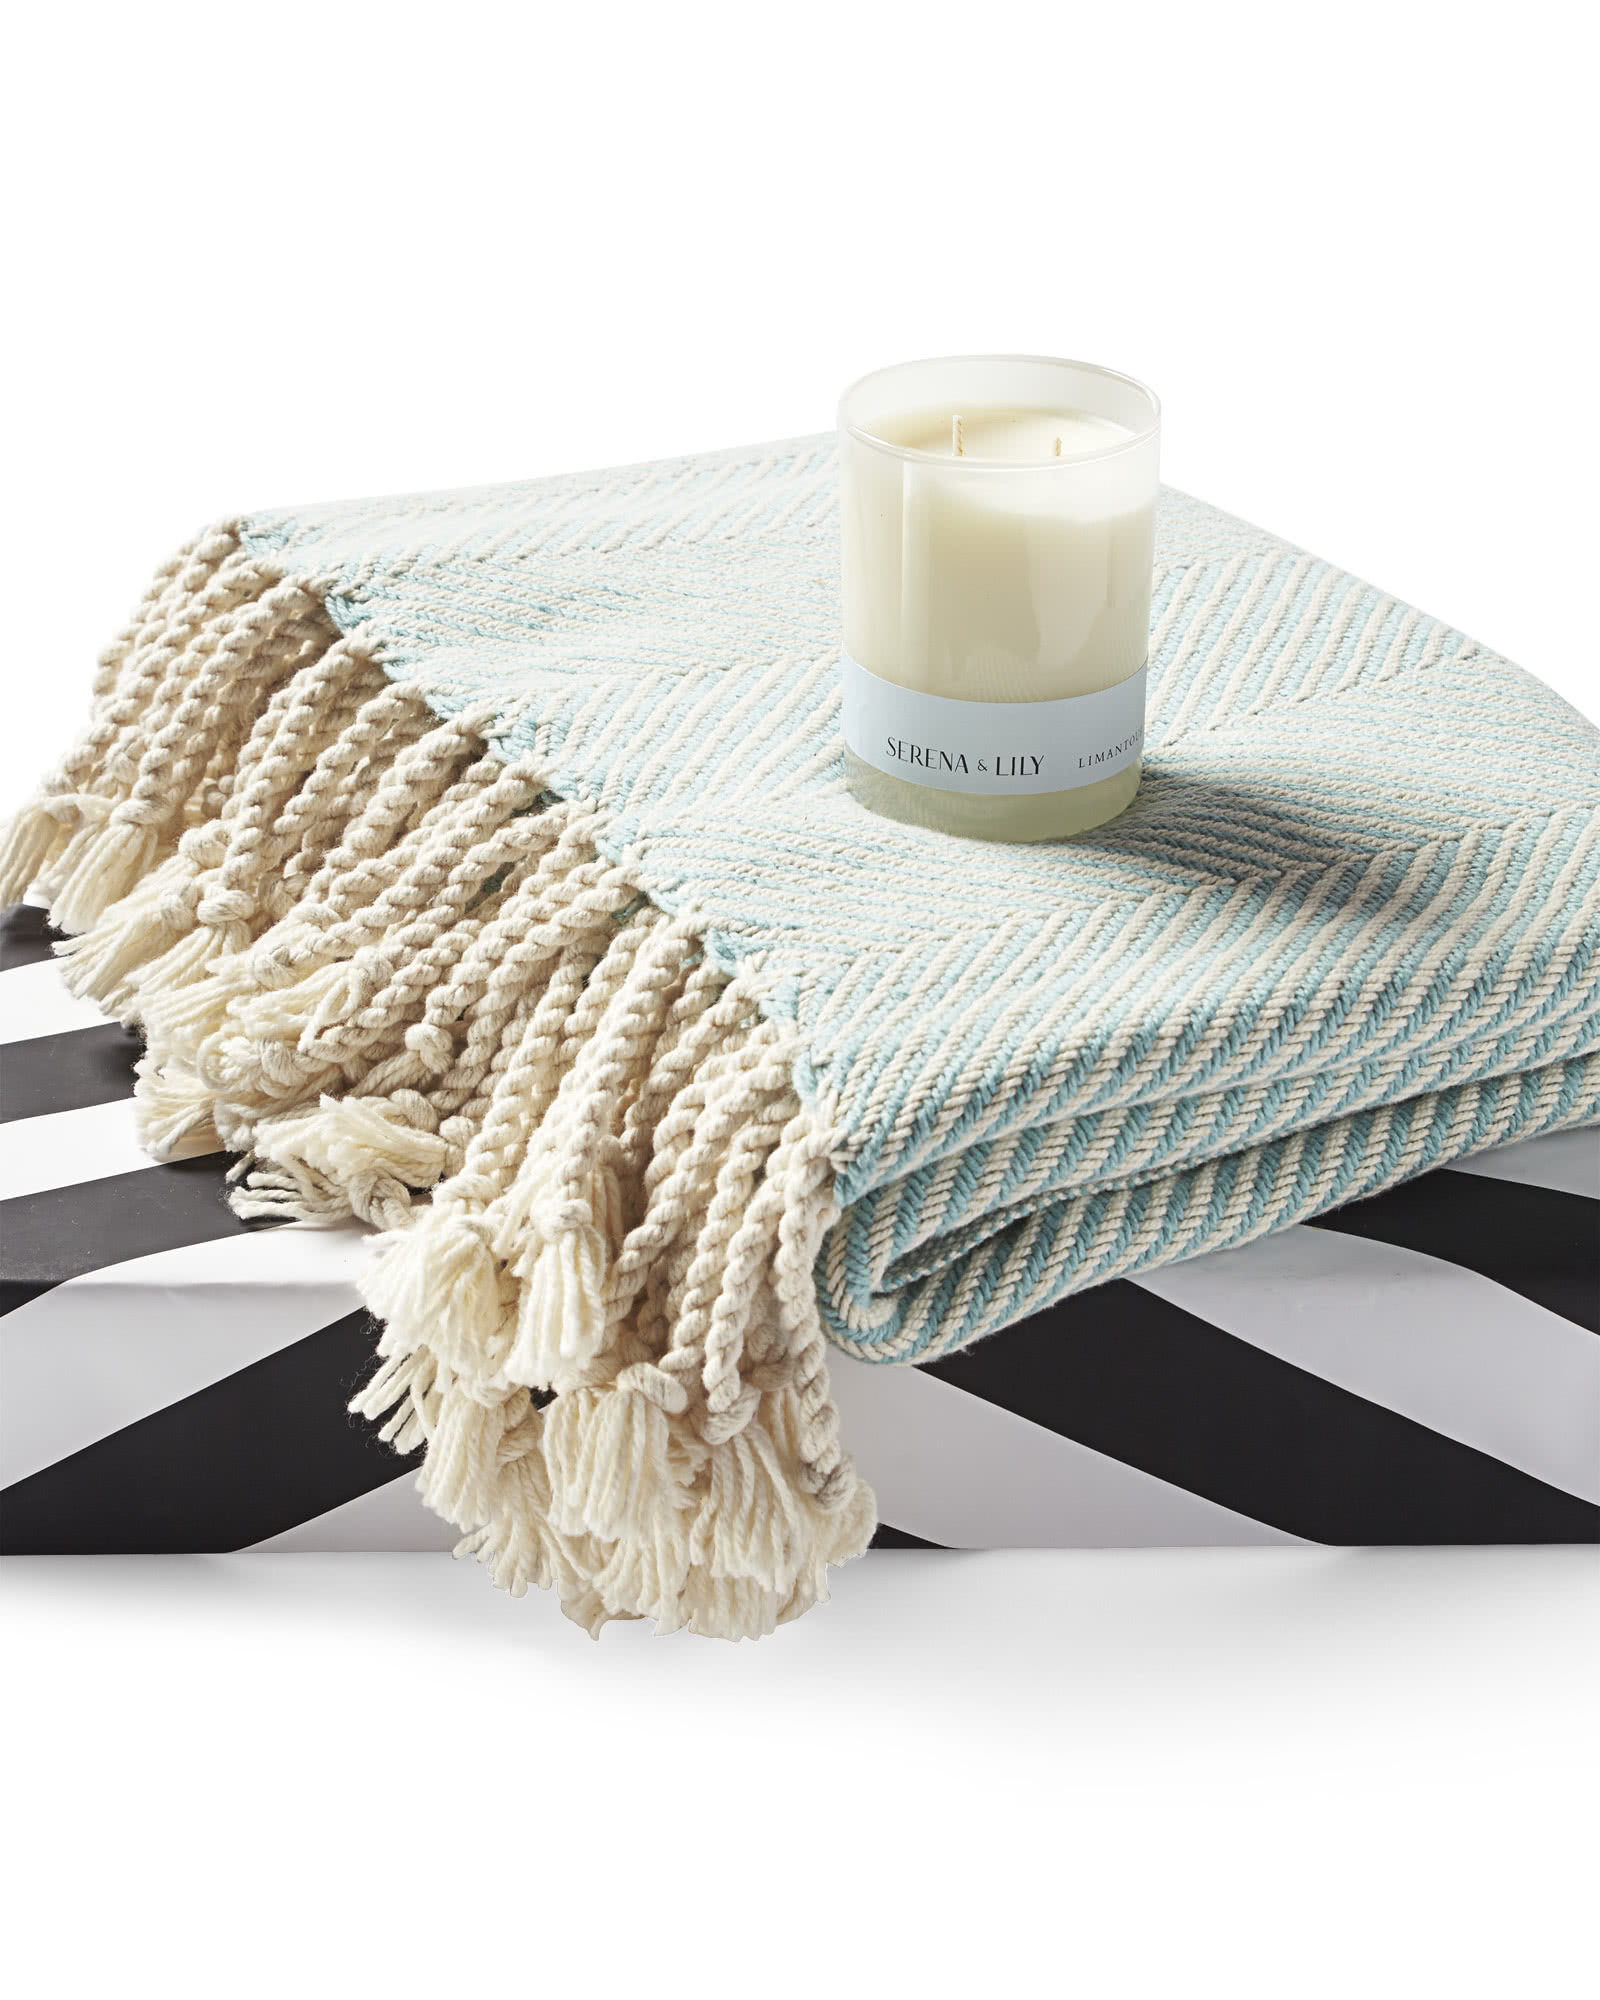 Amagansett Candle & Brahms Mount Herringbone Throw ...